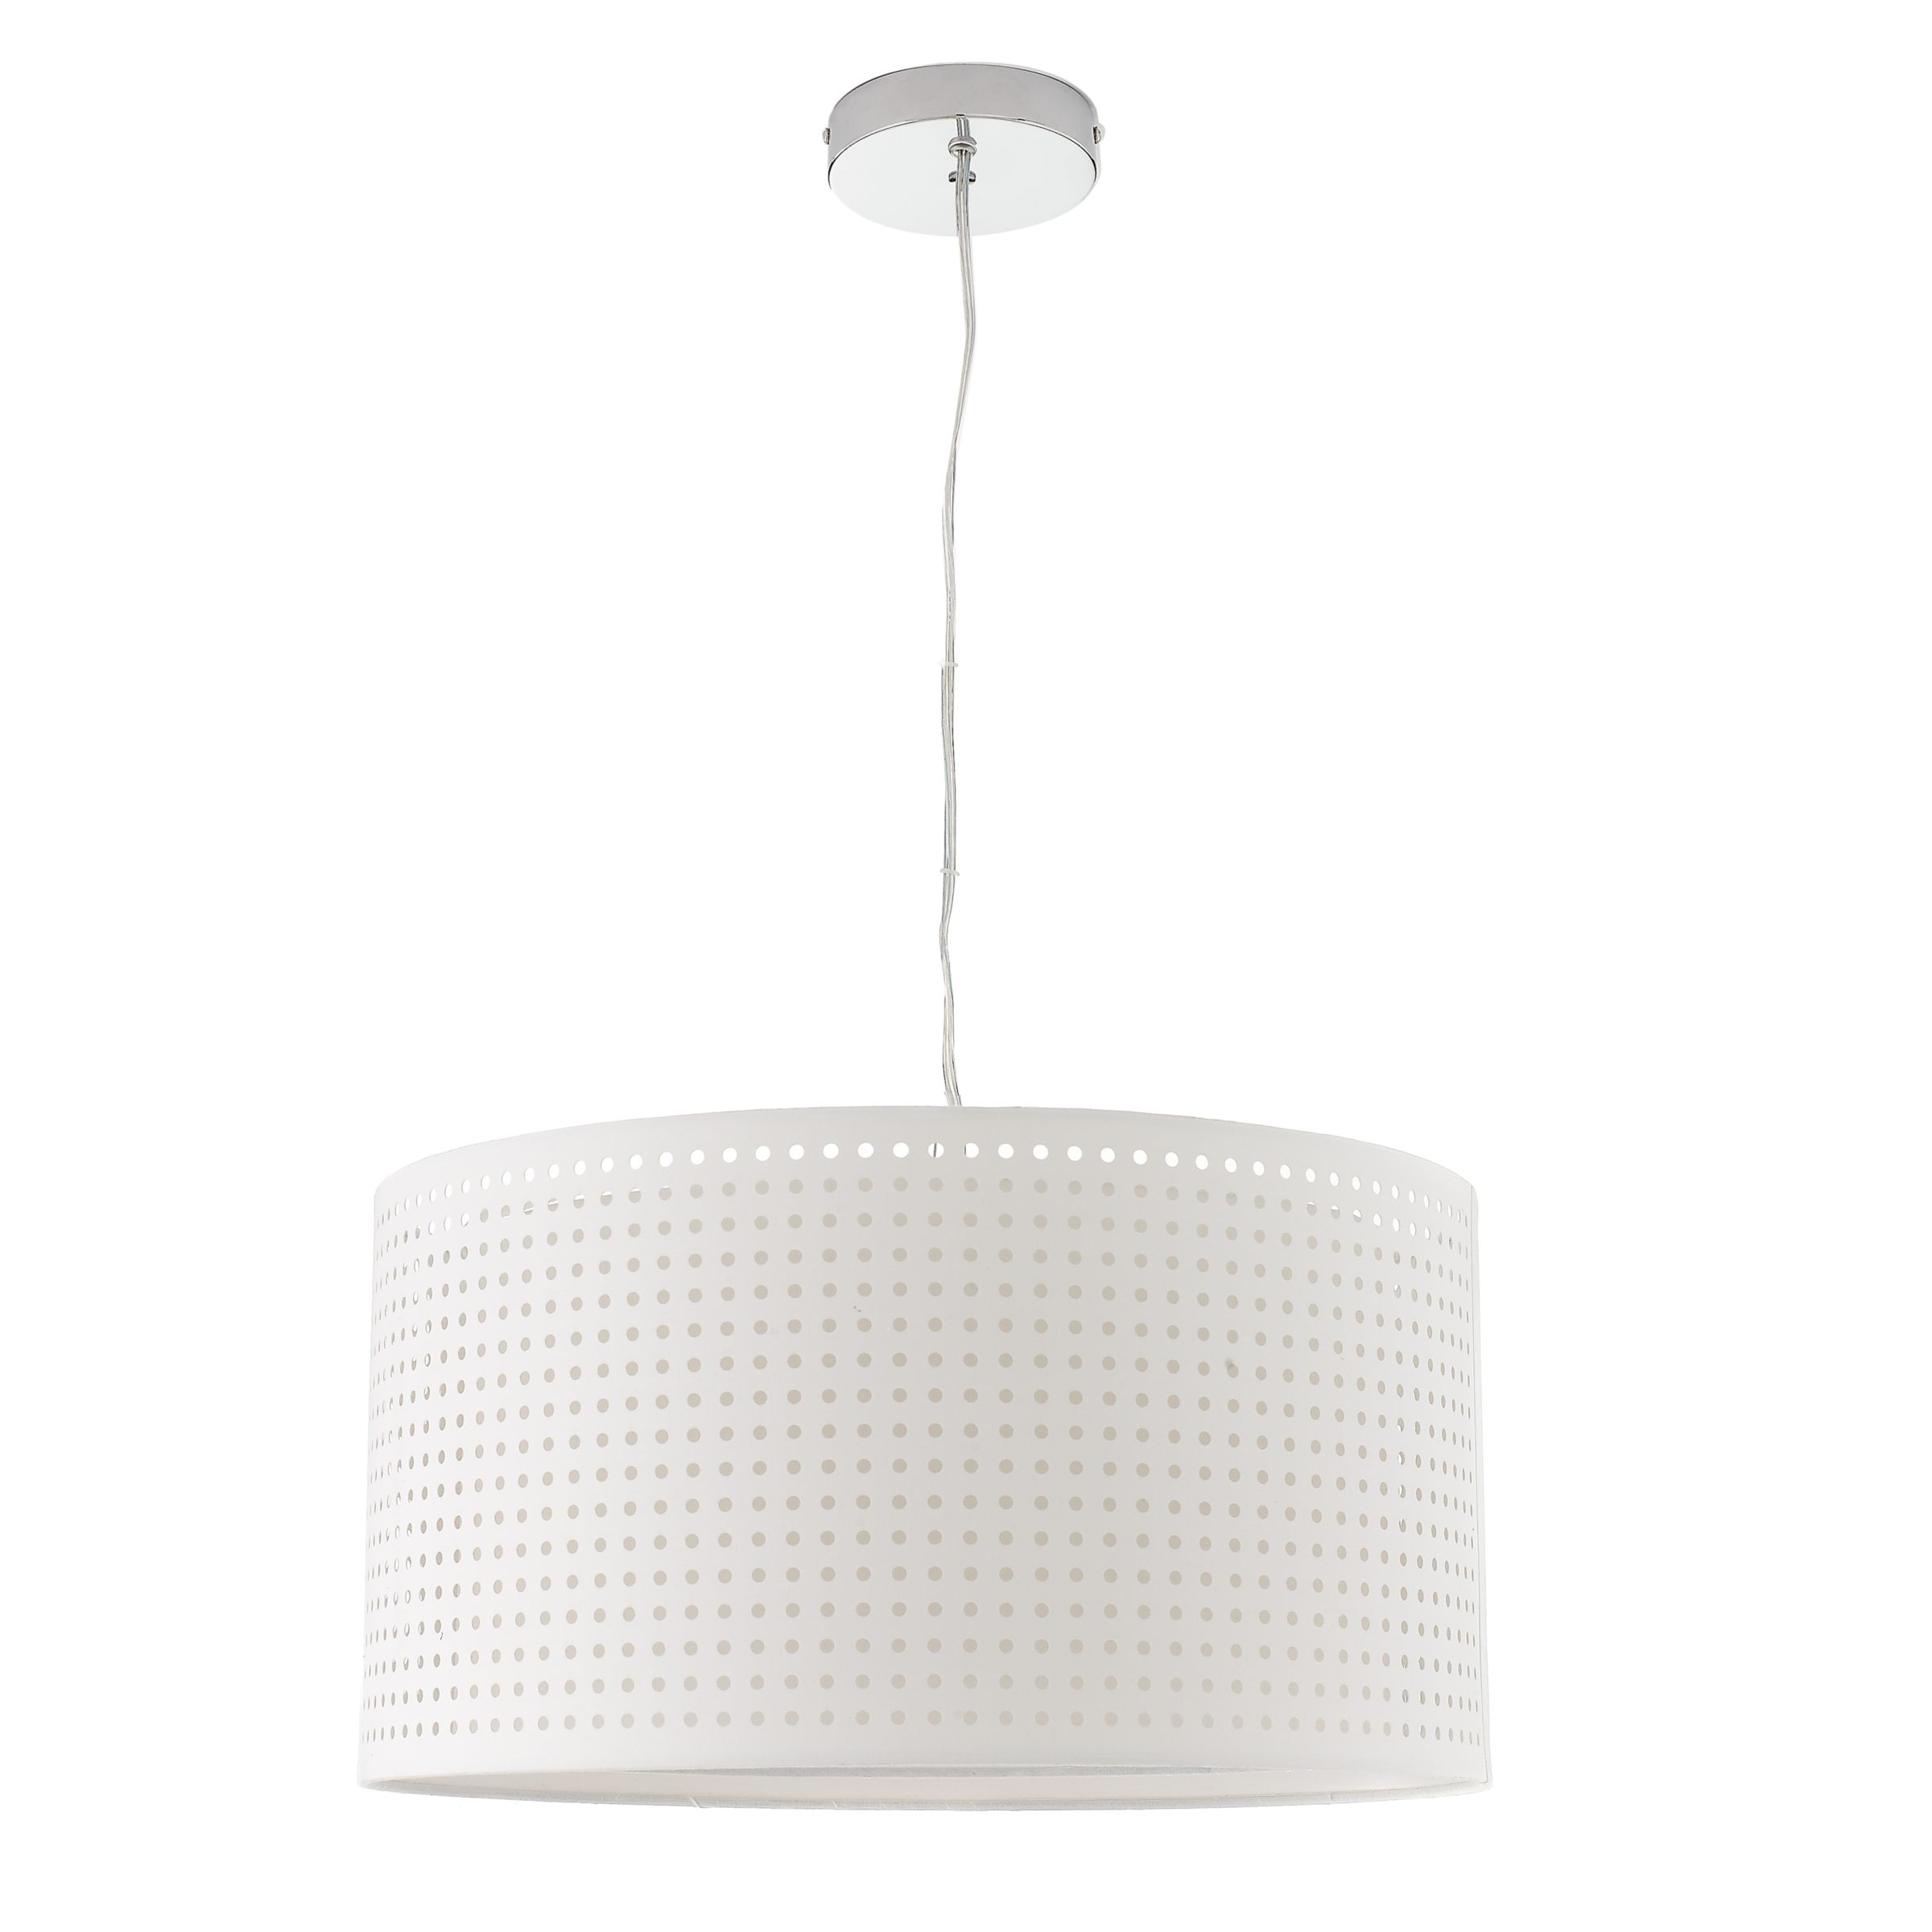 John Lewis White Ceiling Lights : Leds lighting ceiling lights